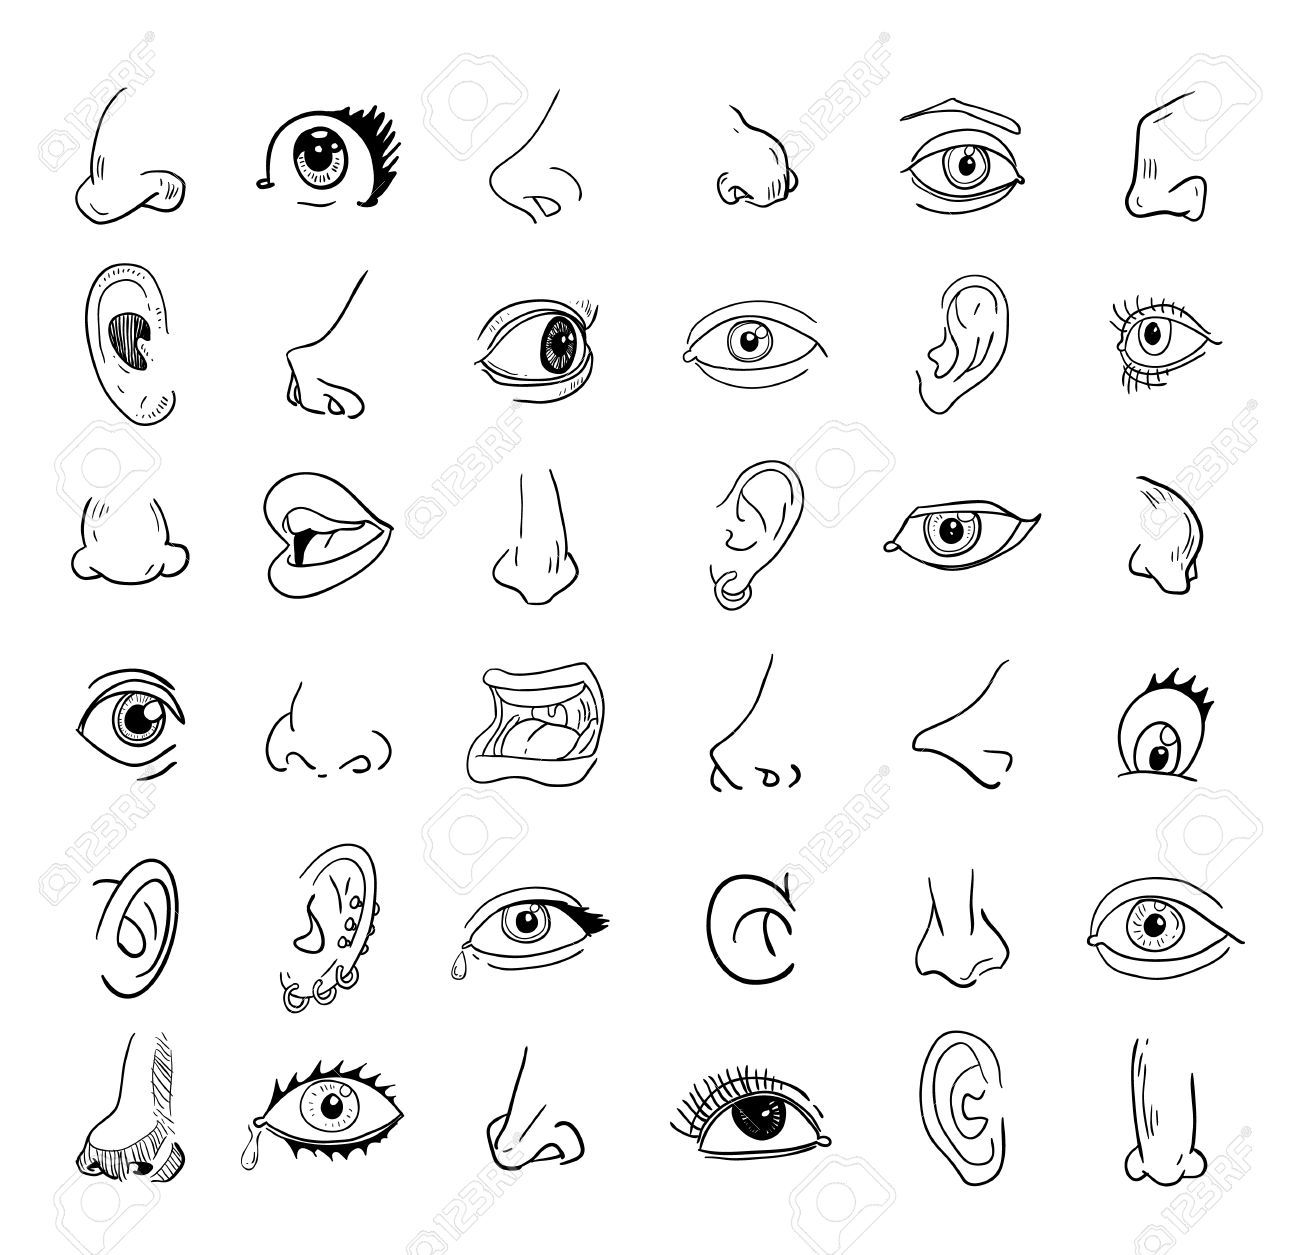 Eyes nose and mouth clipart 6 » Clipart Portal.